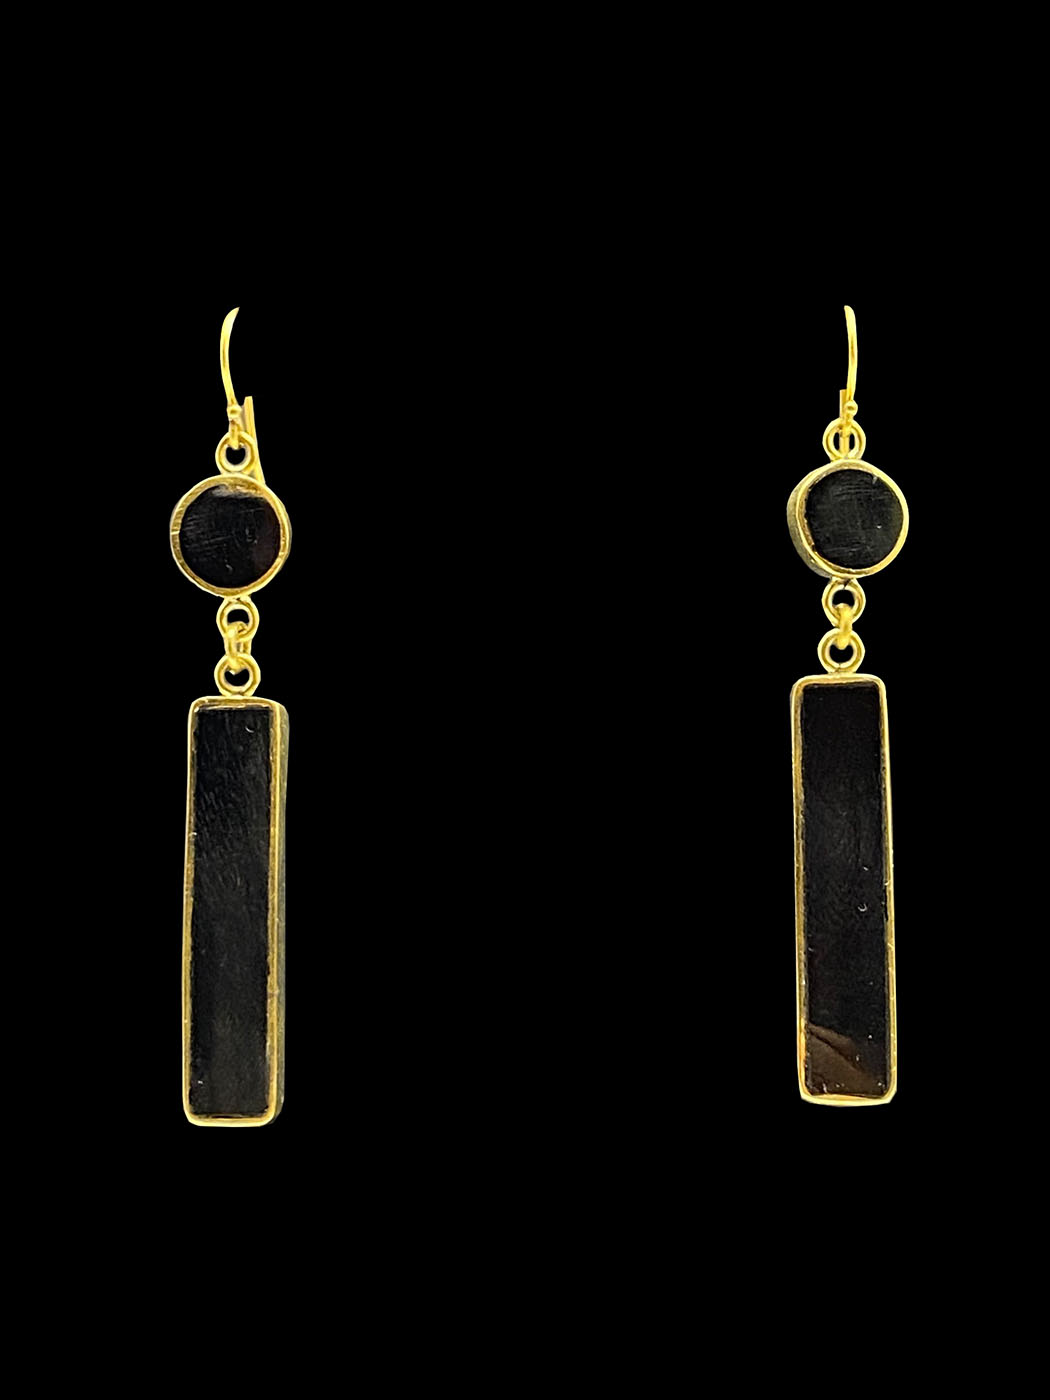 Horn Earrings with Brass Trim - Kenya